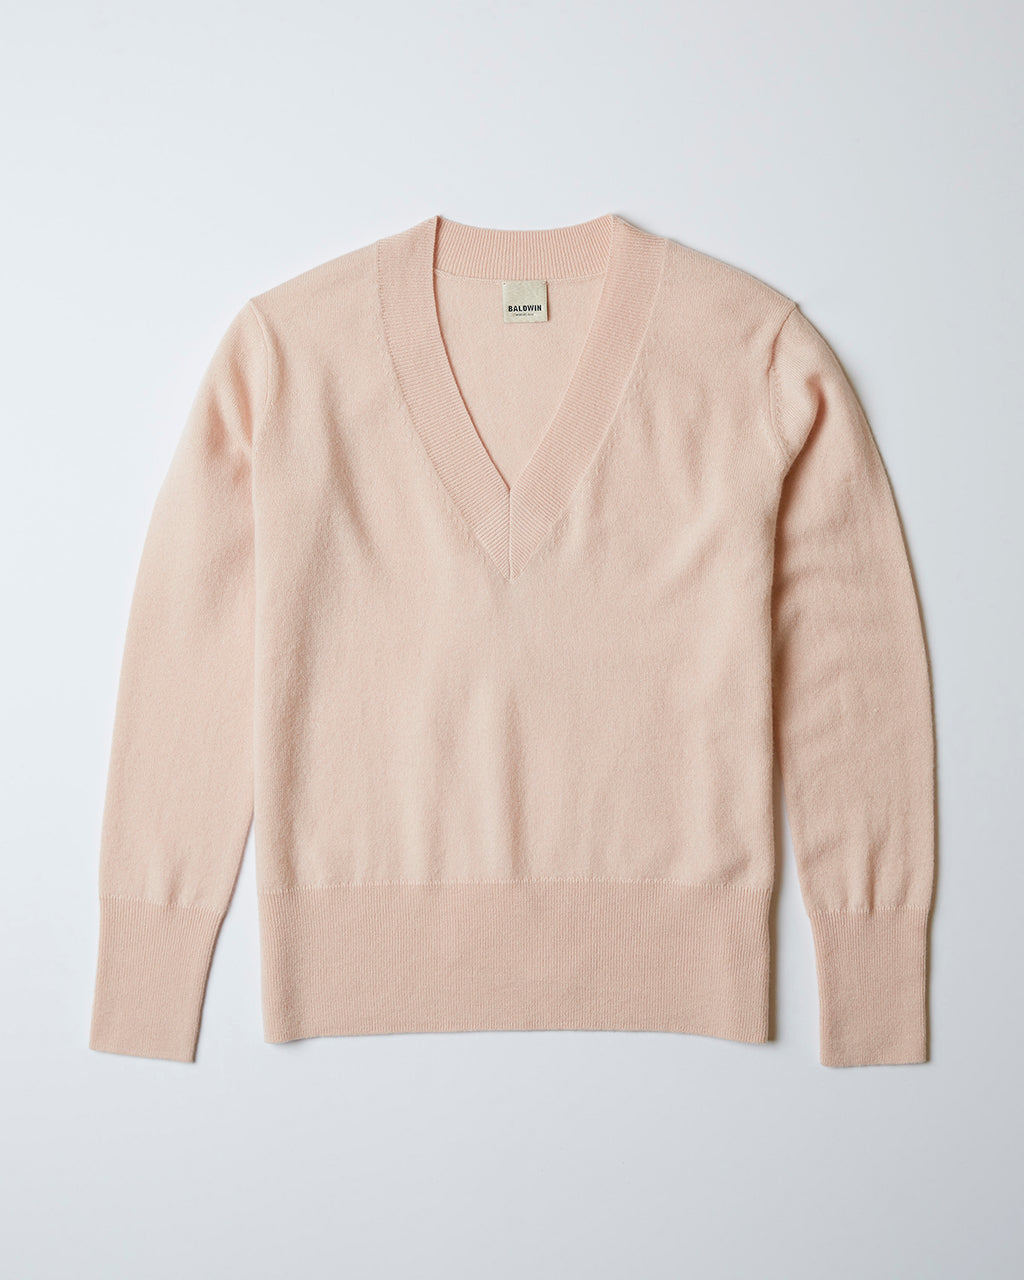 The Lana Sweater In Peachskin